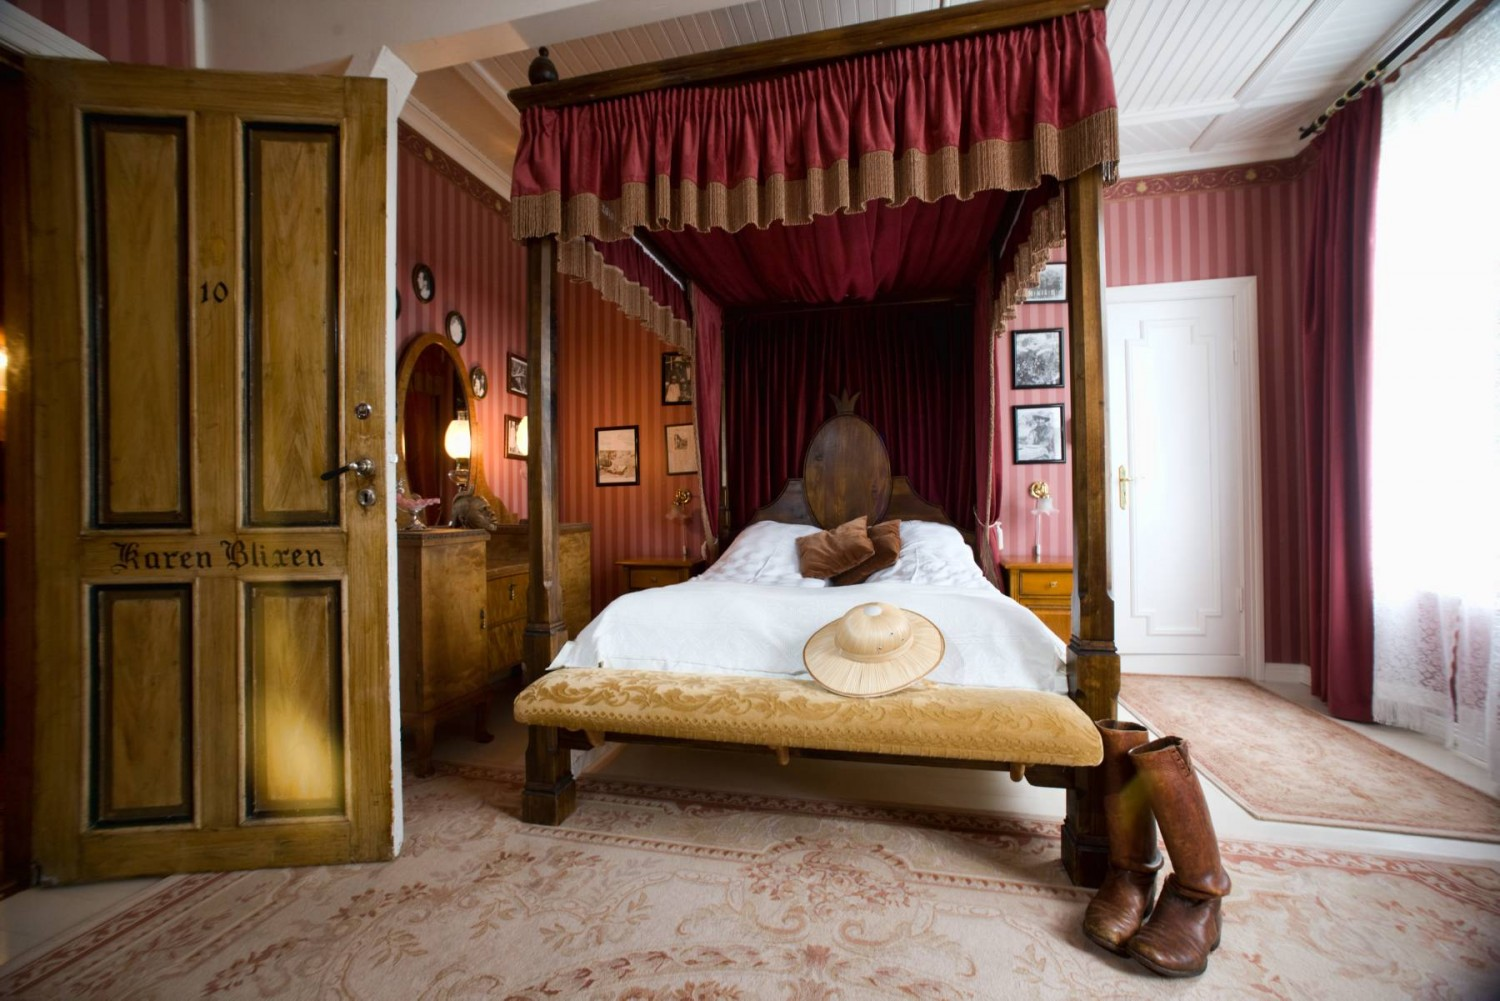 The Room of Karen Blixen Hotel Union ùye 62¯Nord_62.no